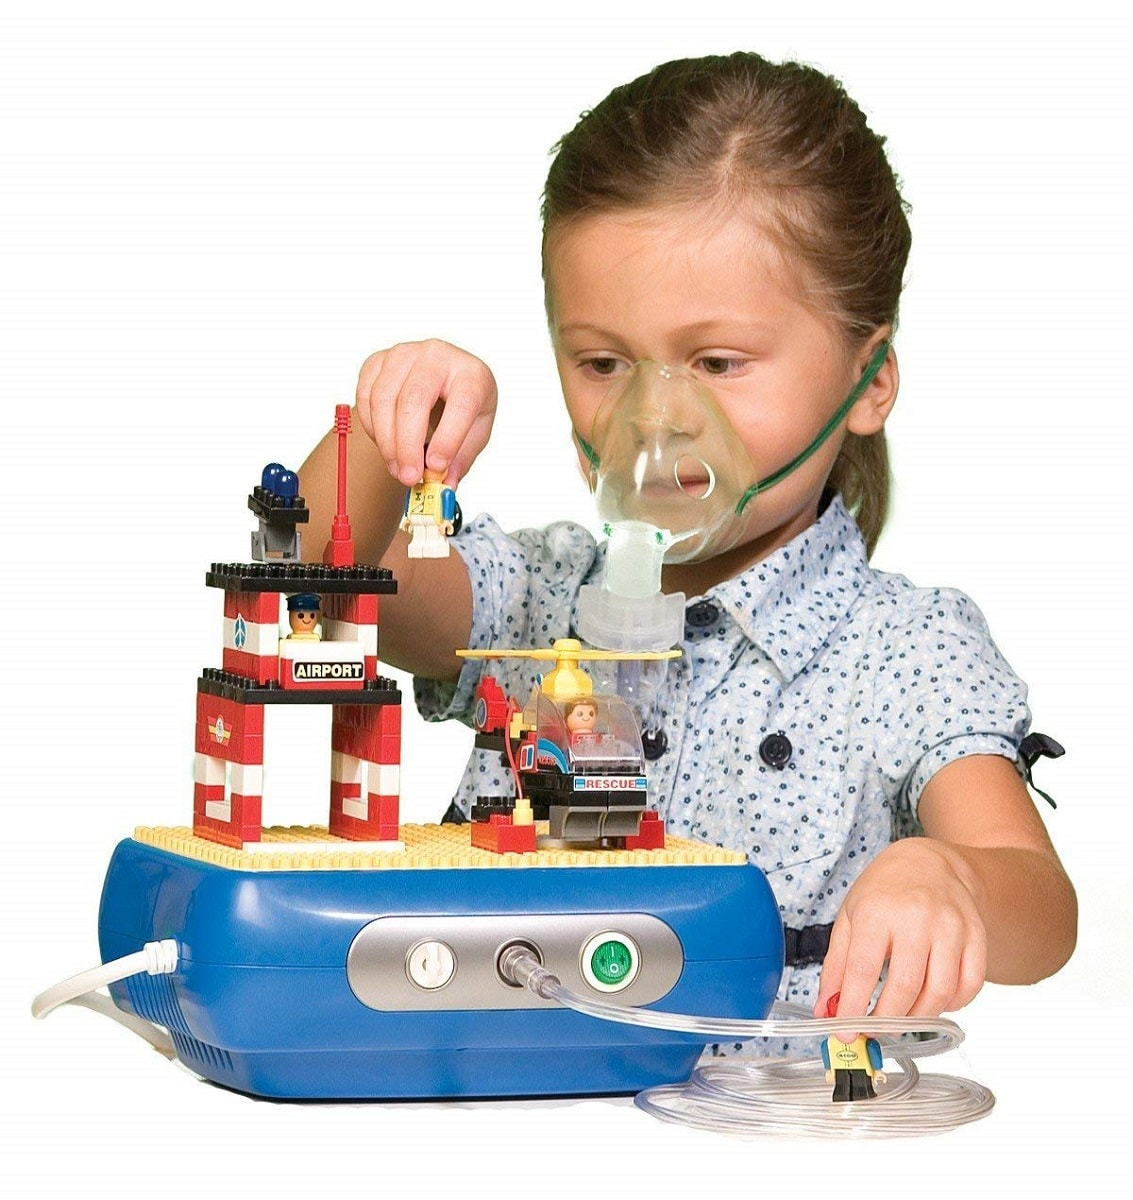 personal cool mist nebulizer kids image